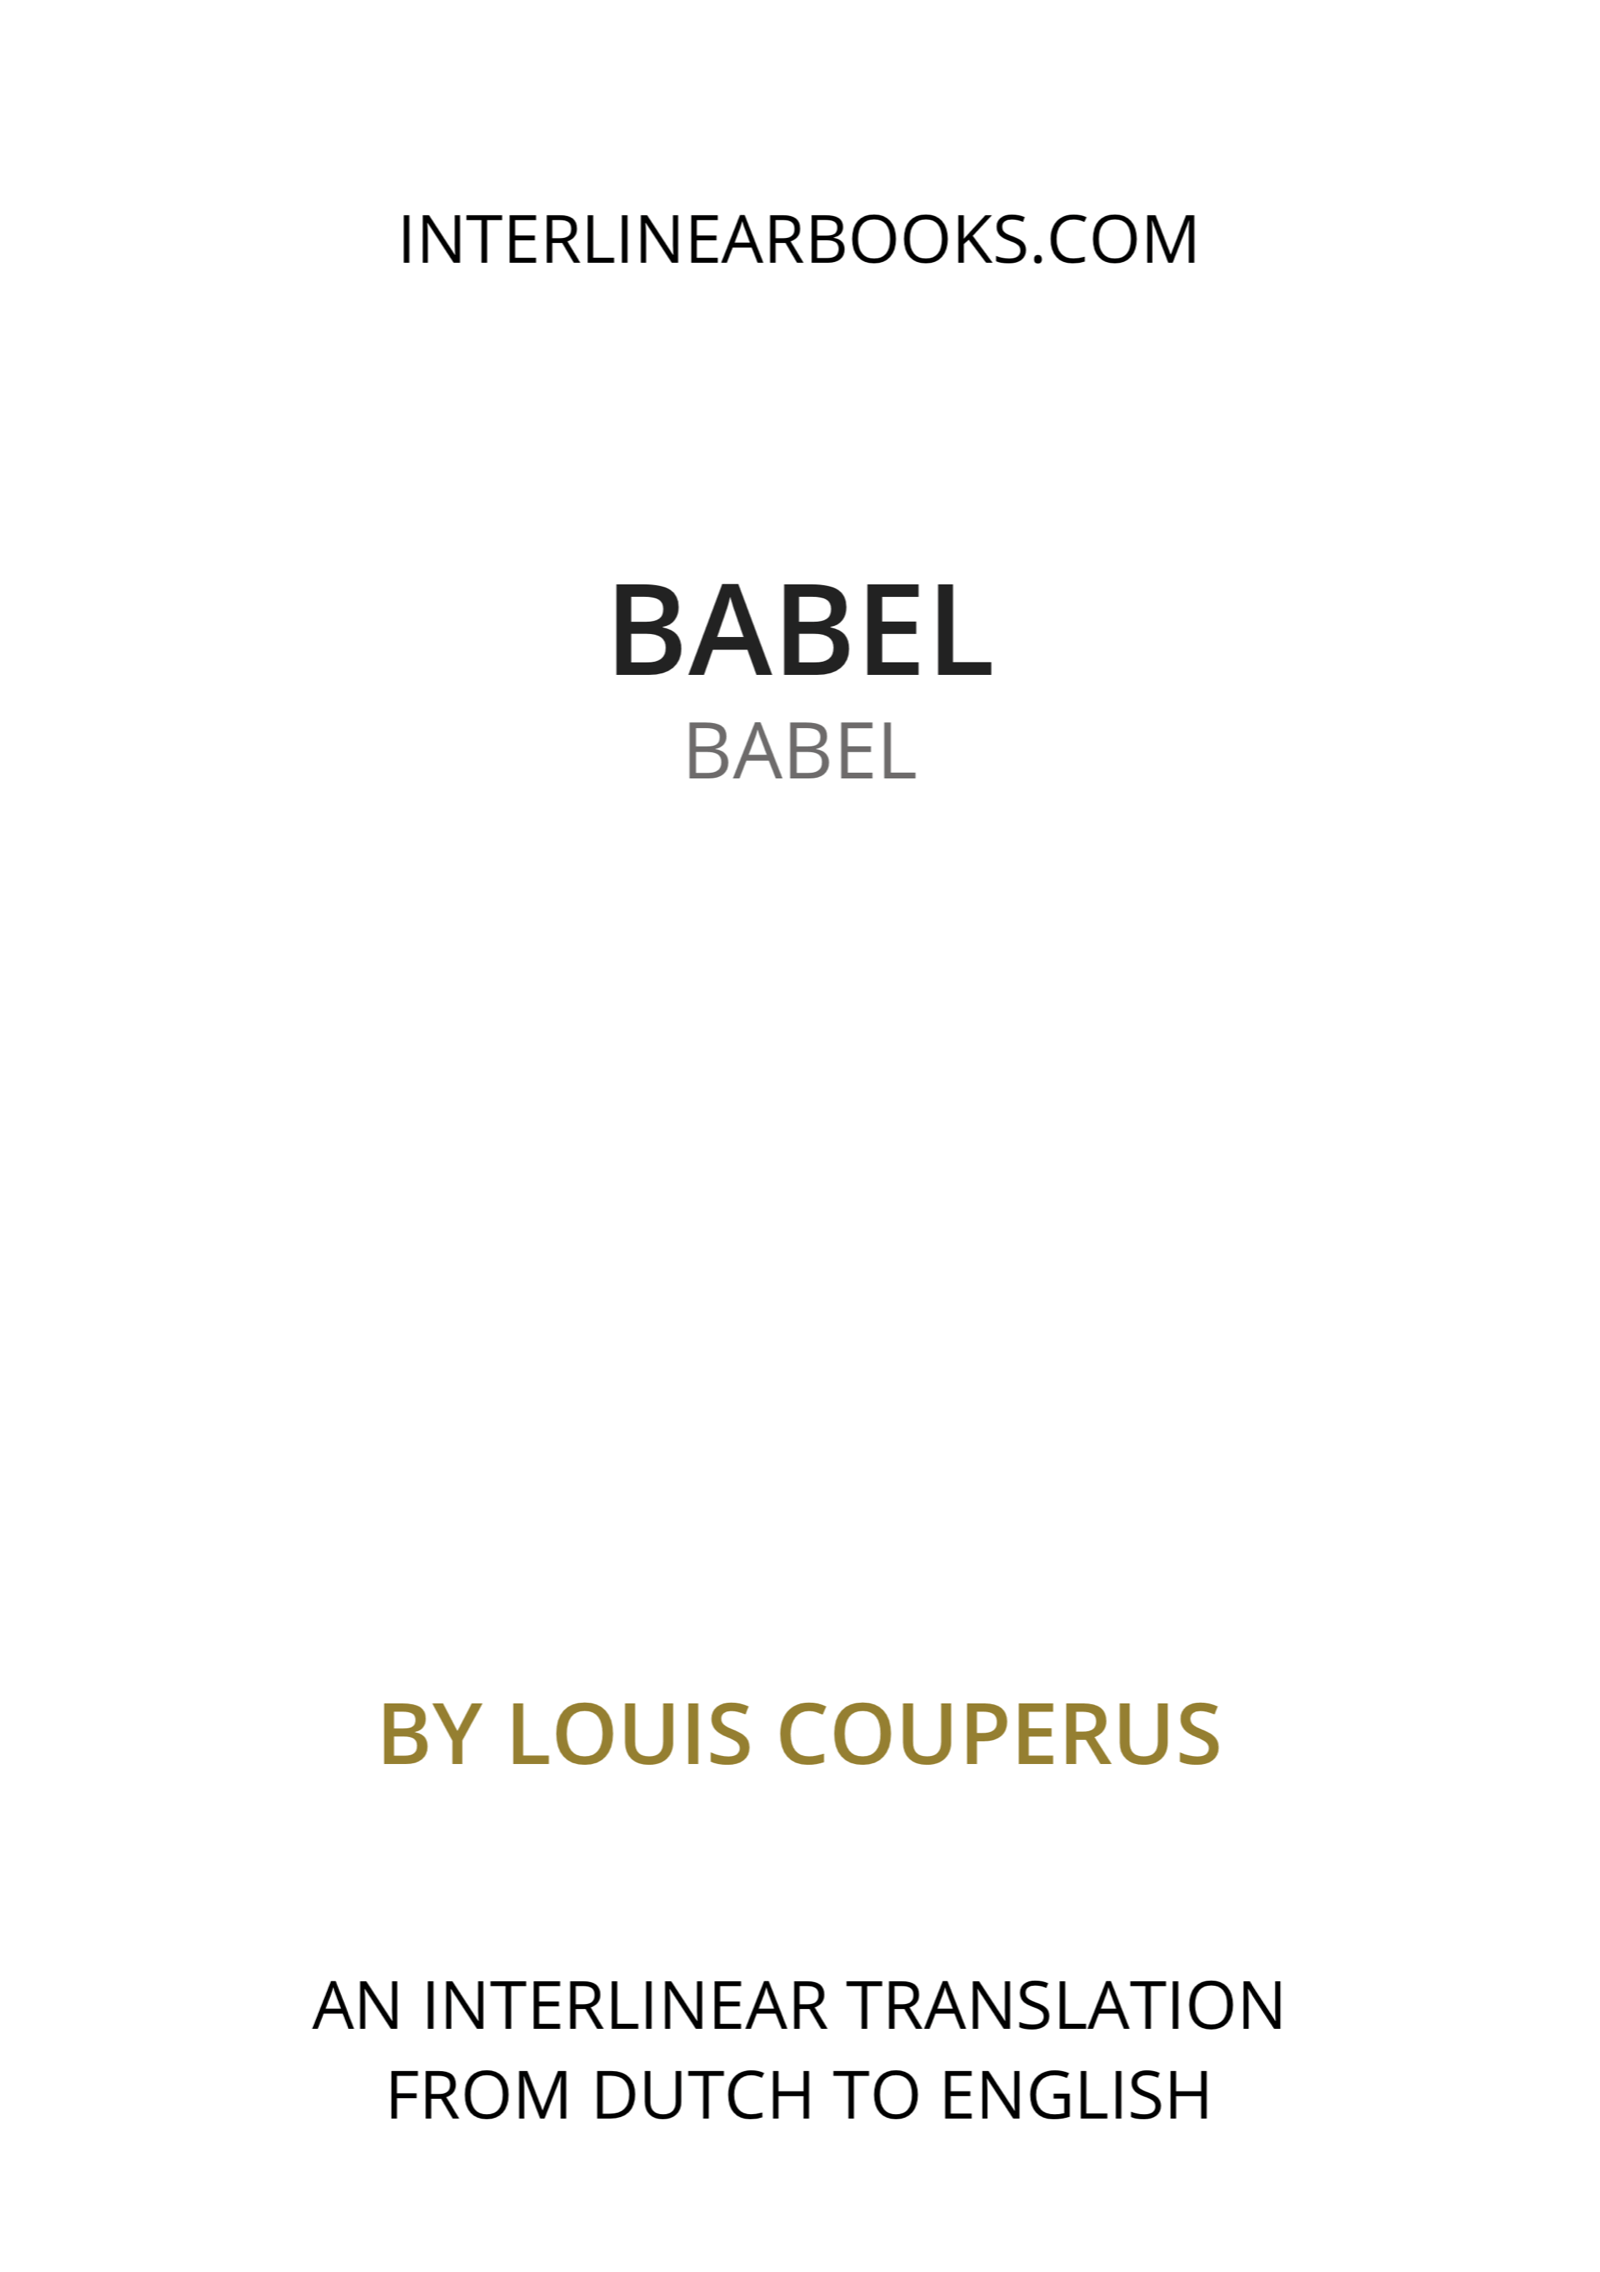 Dutch book: Babel / Babel